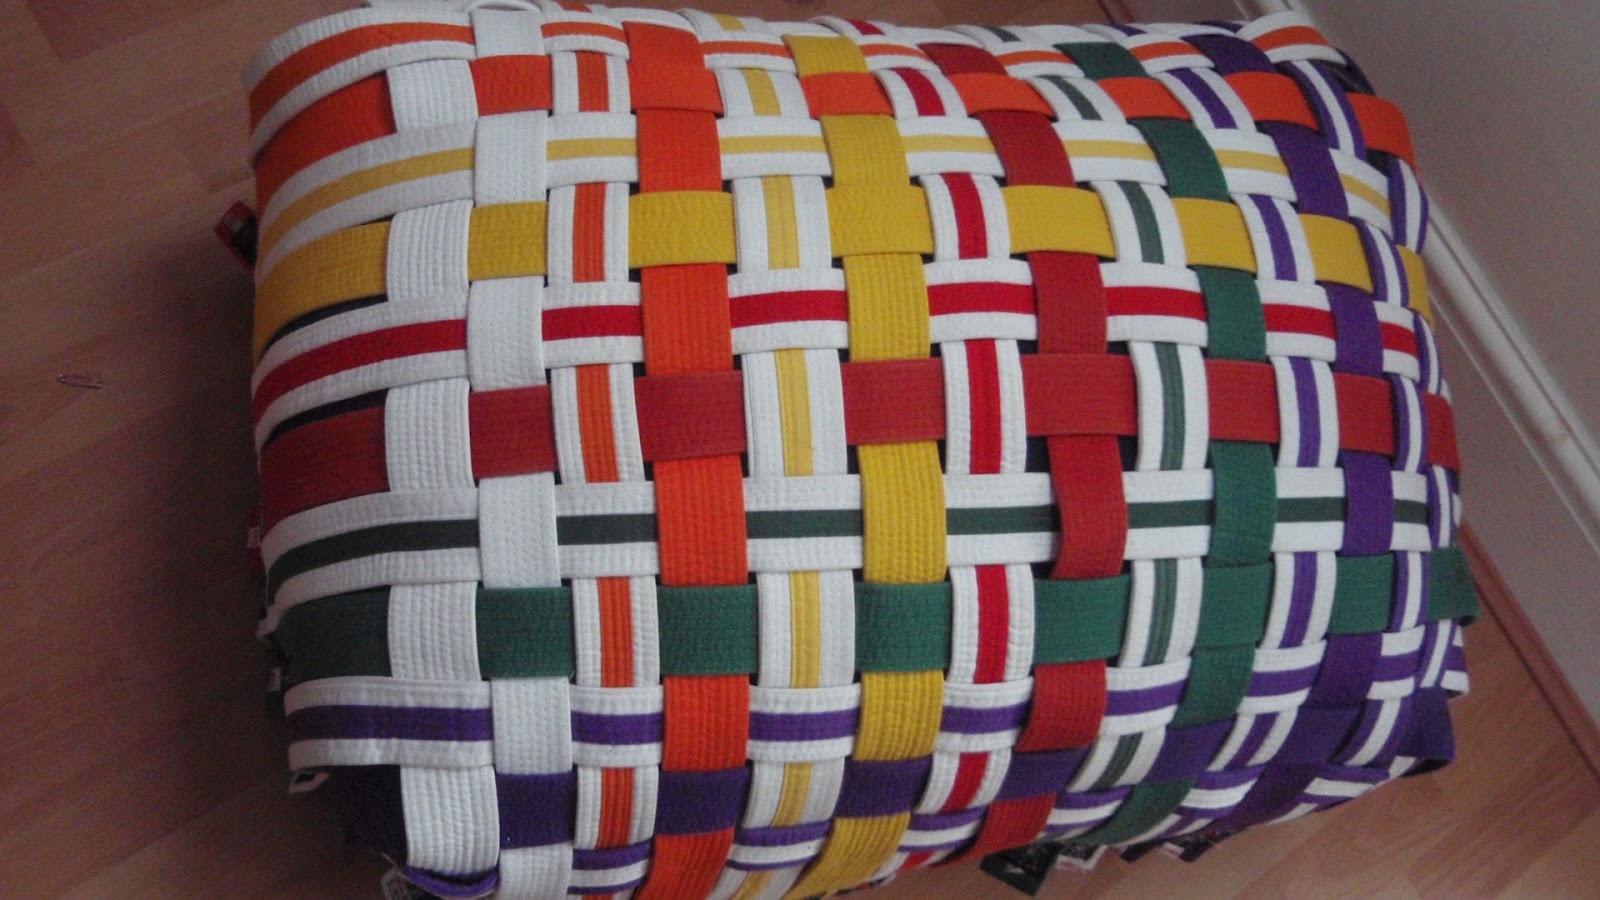 Karate belt display ideas - For This Assignment I Wanted To Make Use Of My Children S Karate Belts My Ideas Ranged From A Wall Hanging A Folding Chair A Waistcoat To Finally A Low